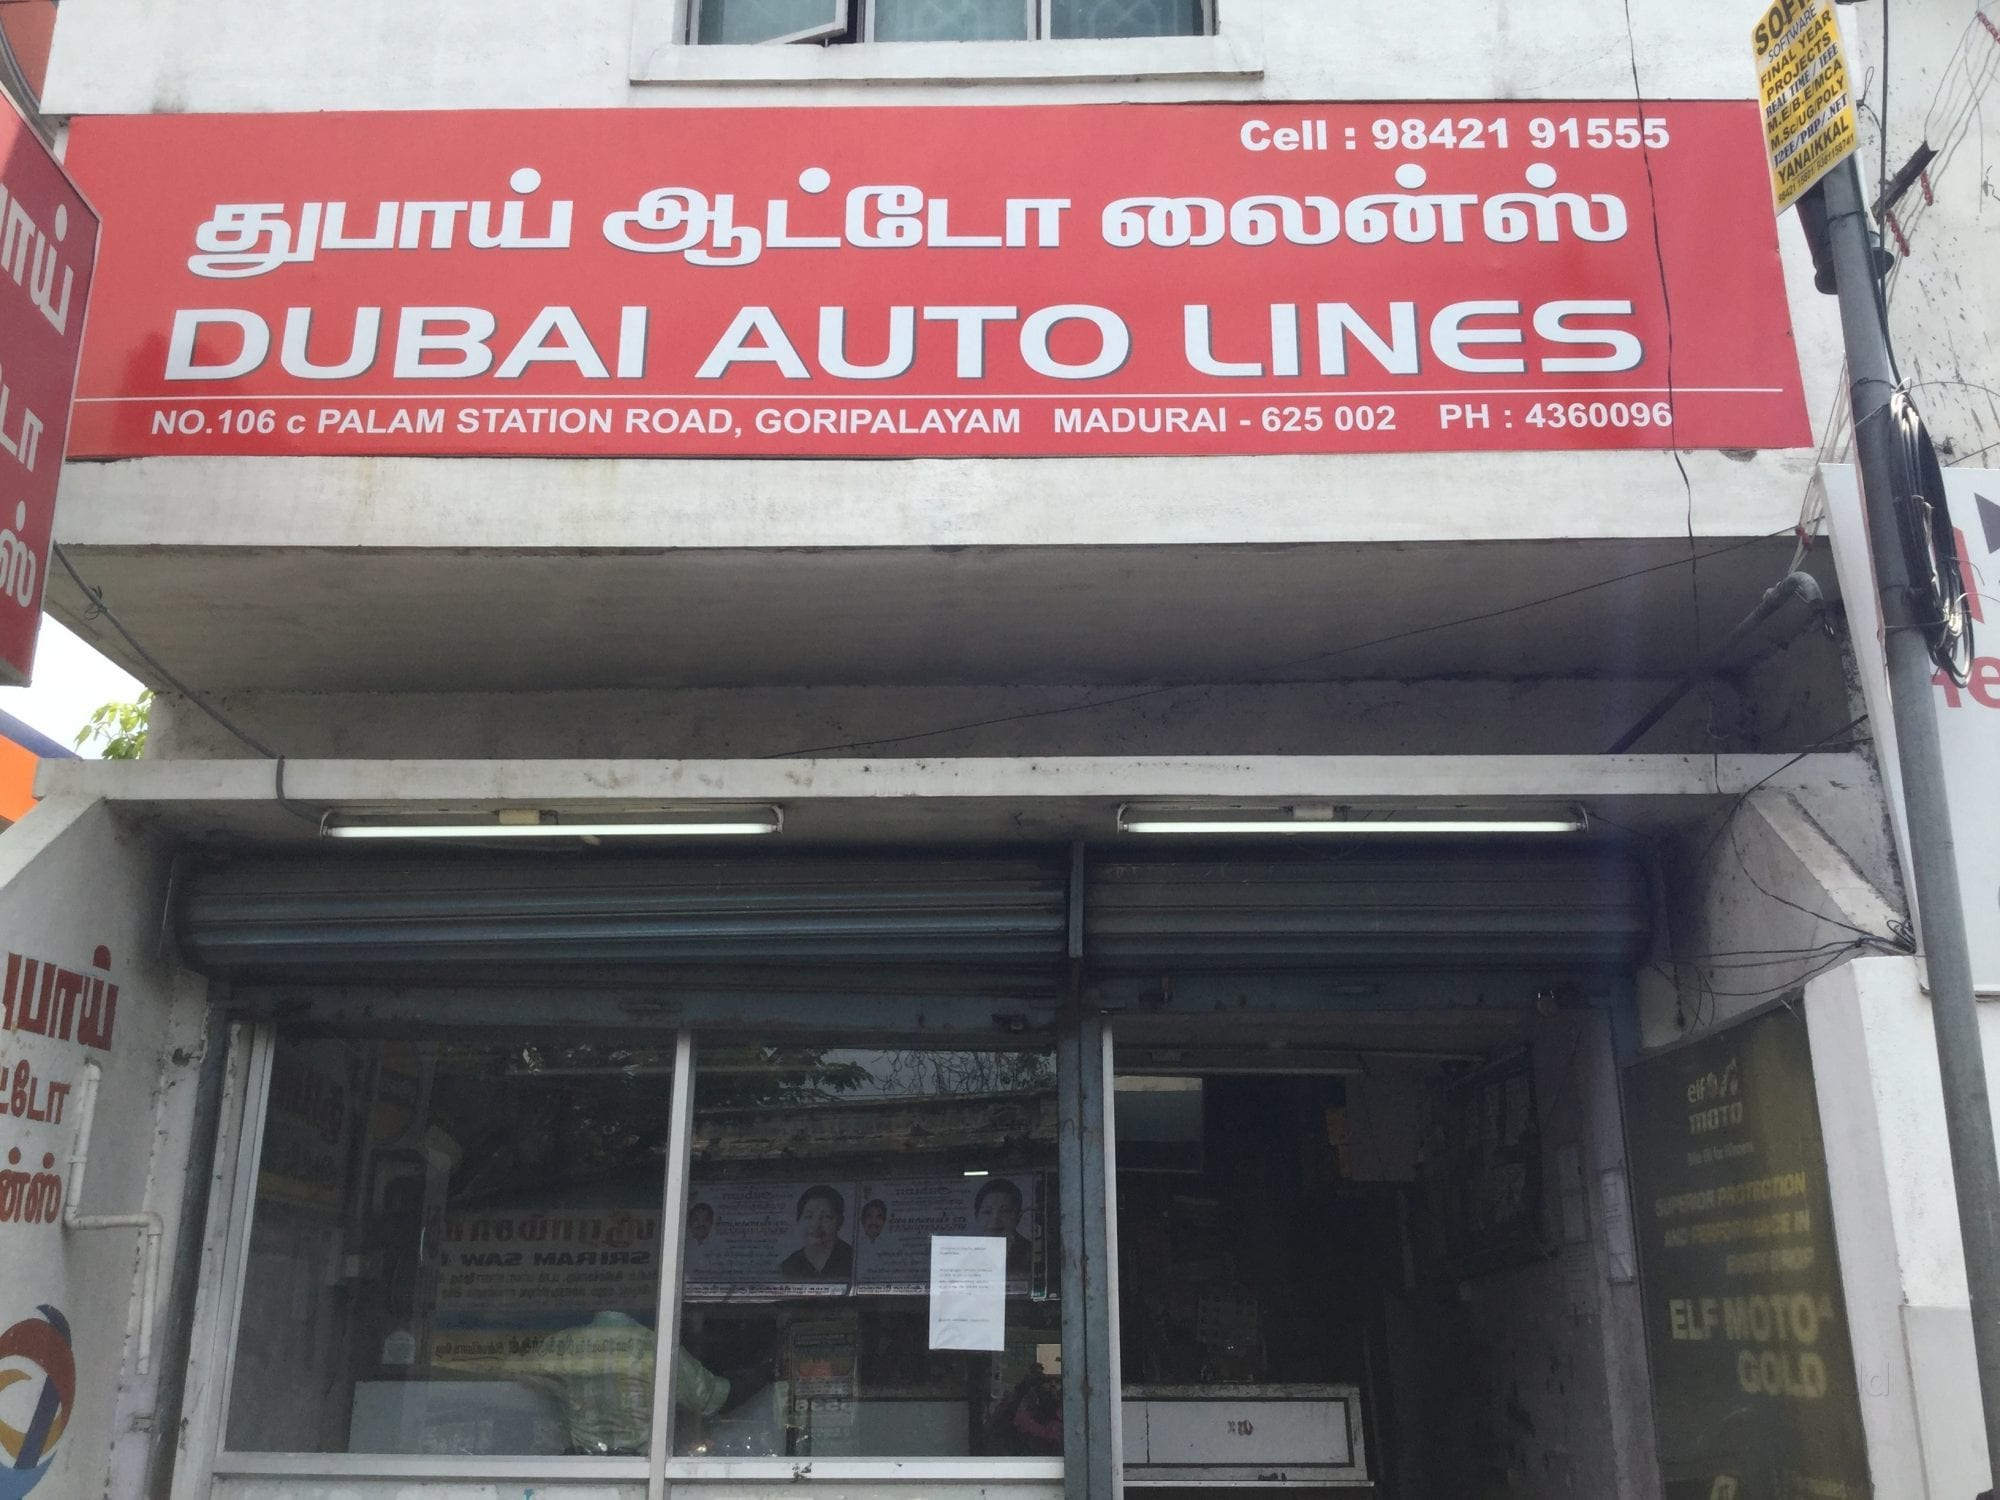 Top 100 Two Wheeler Spare Part Dealers in Madurai - Best 2